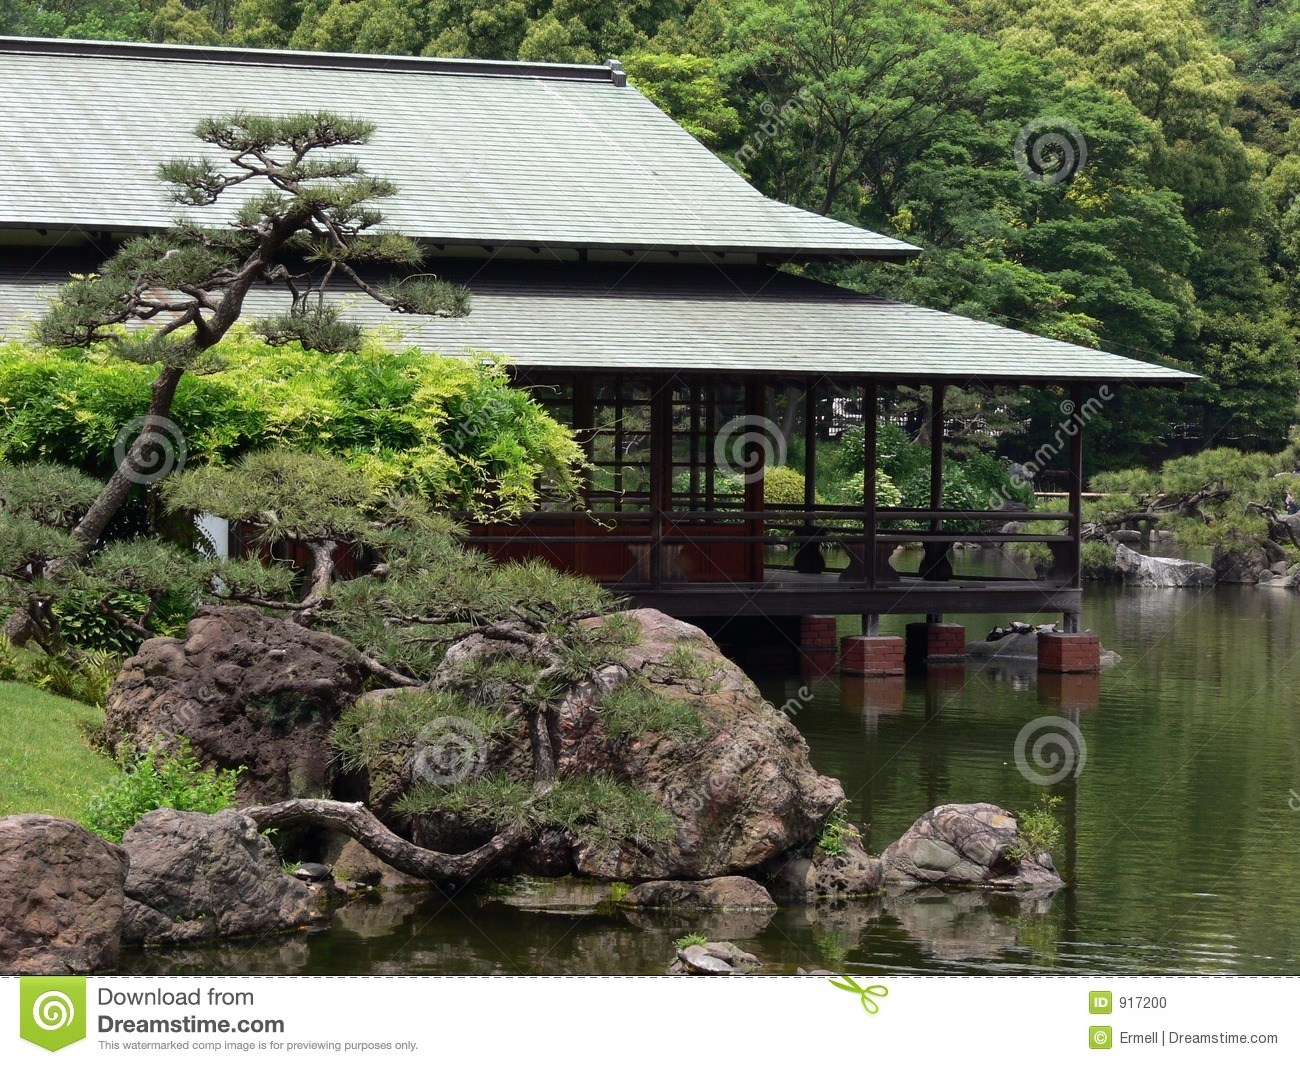 28 japanese garden design ideas to style up your backyard - 28 Japanese Garden Design Ideas To Style Up Your Backyard